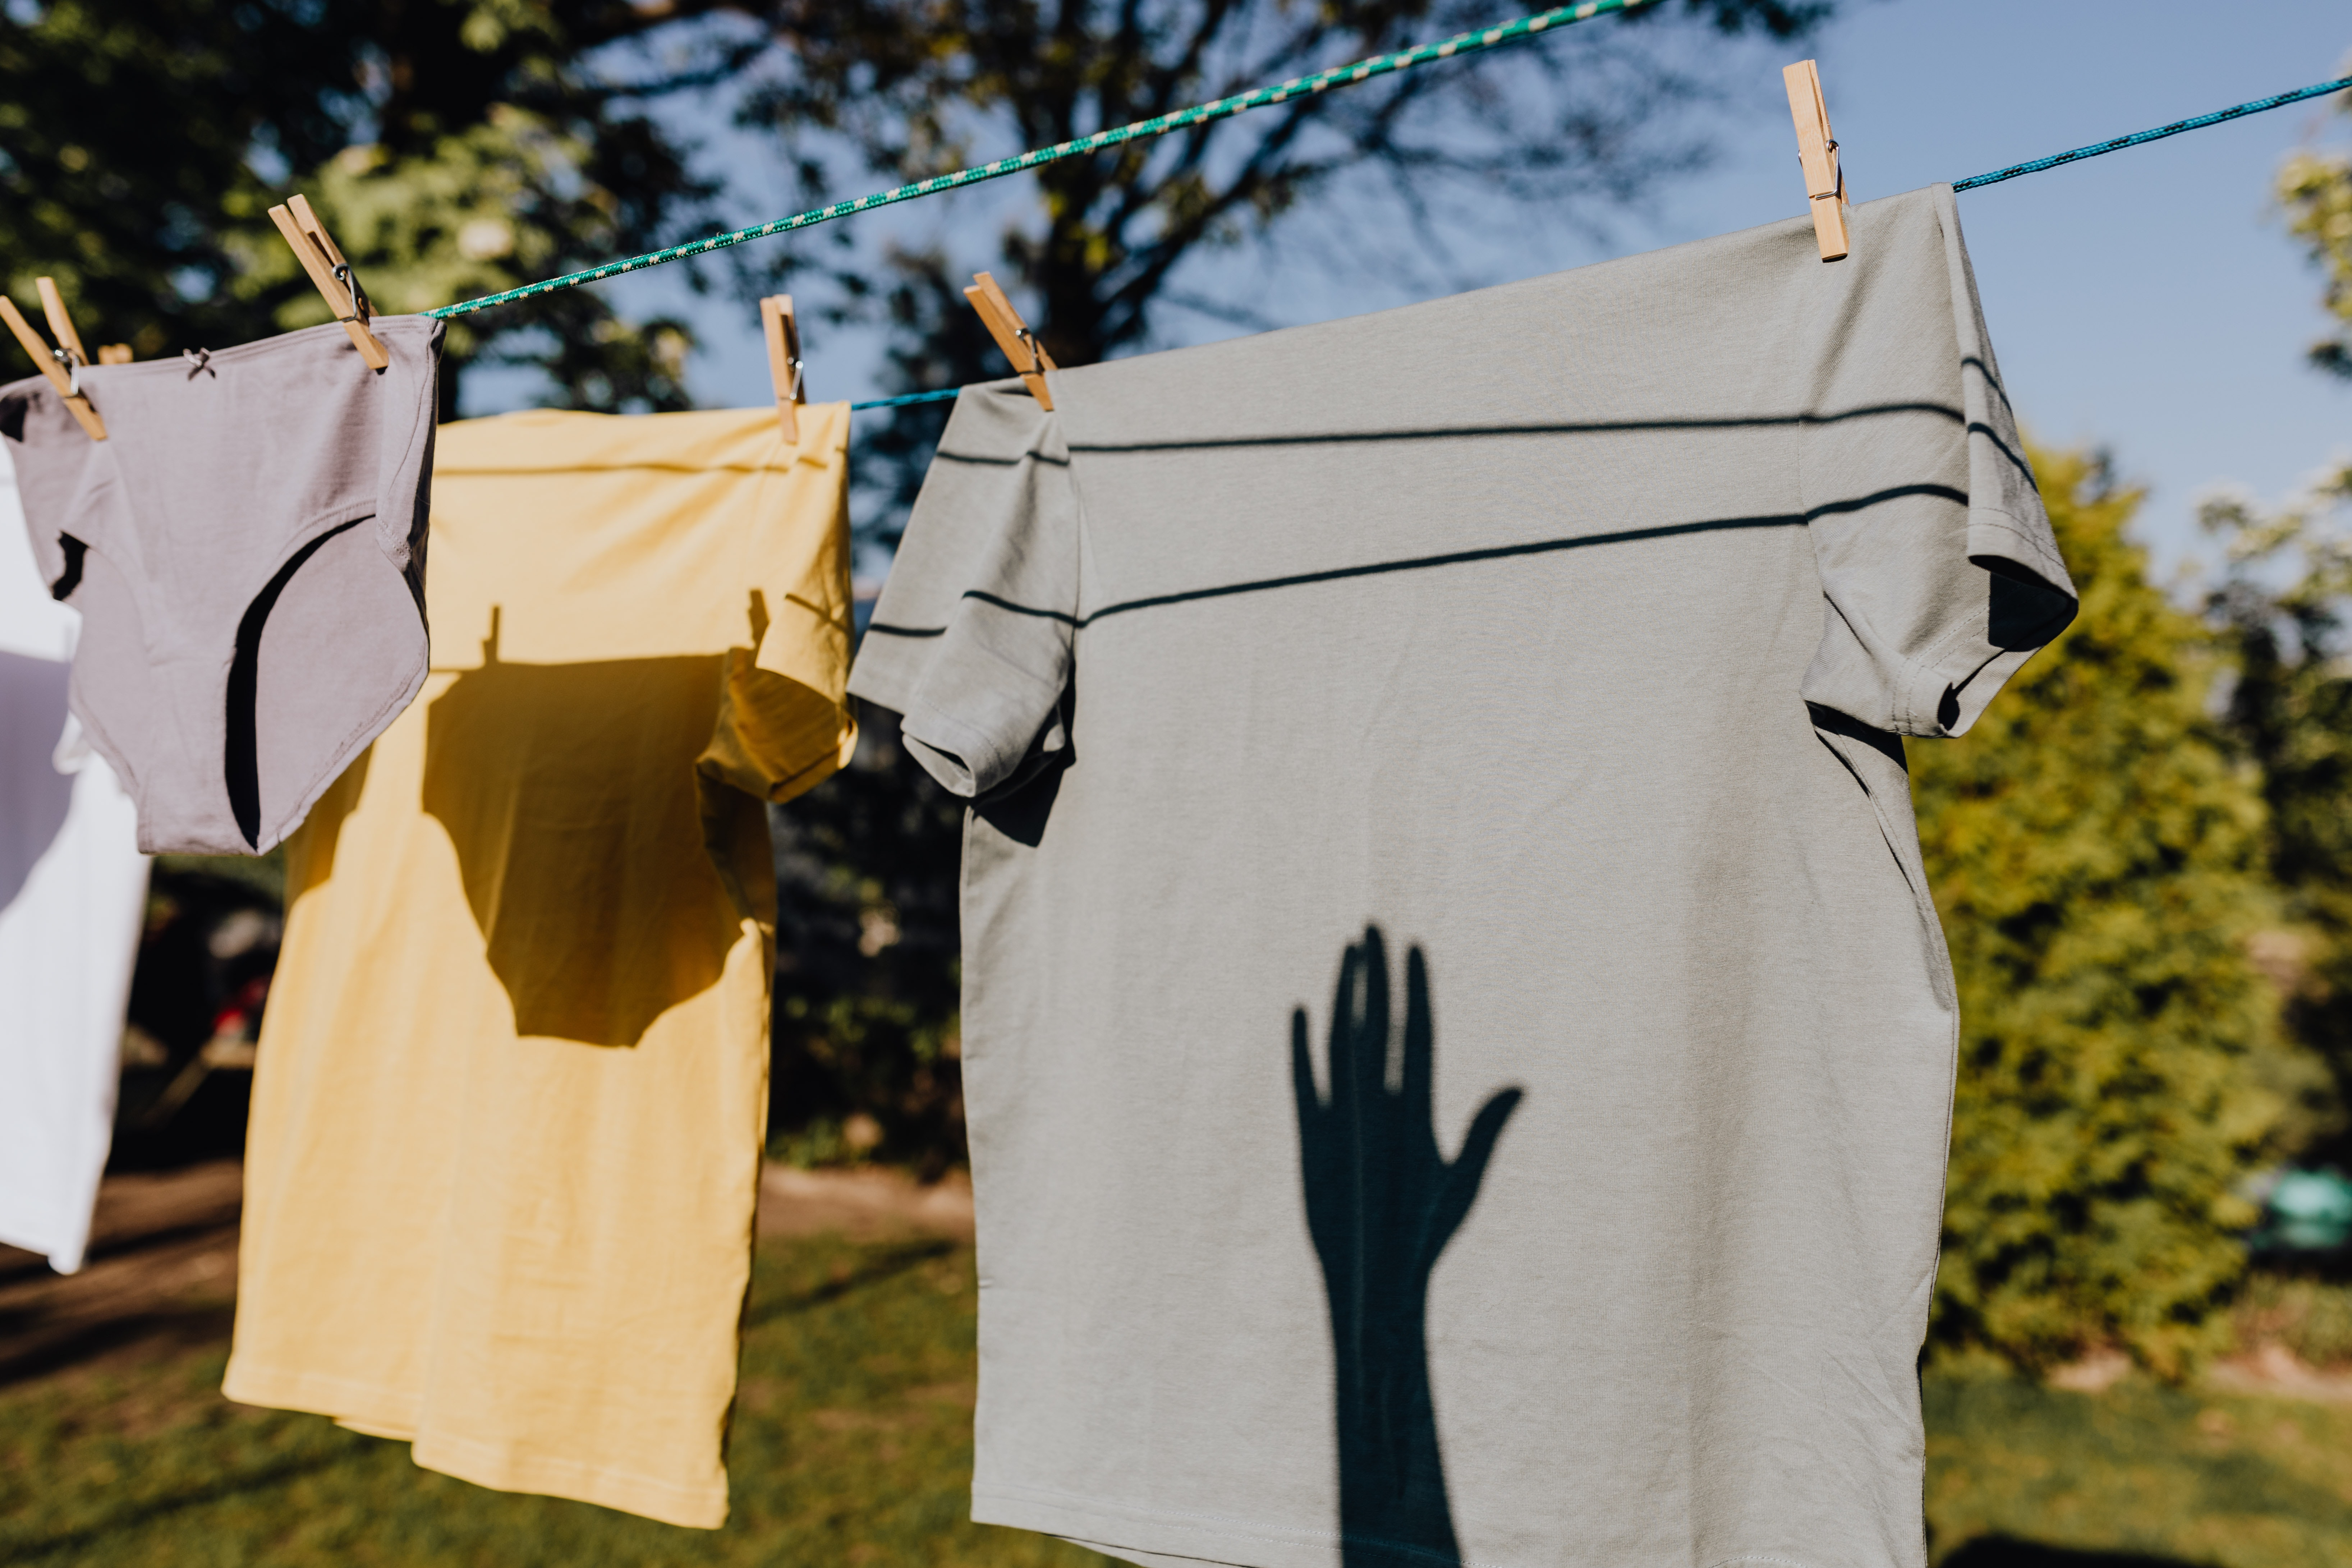 clothes-drying-on-rope-with-clothespins-in-garden-4495705.jpg